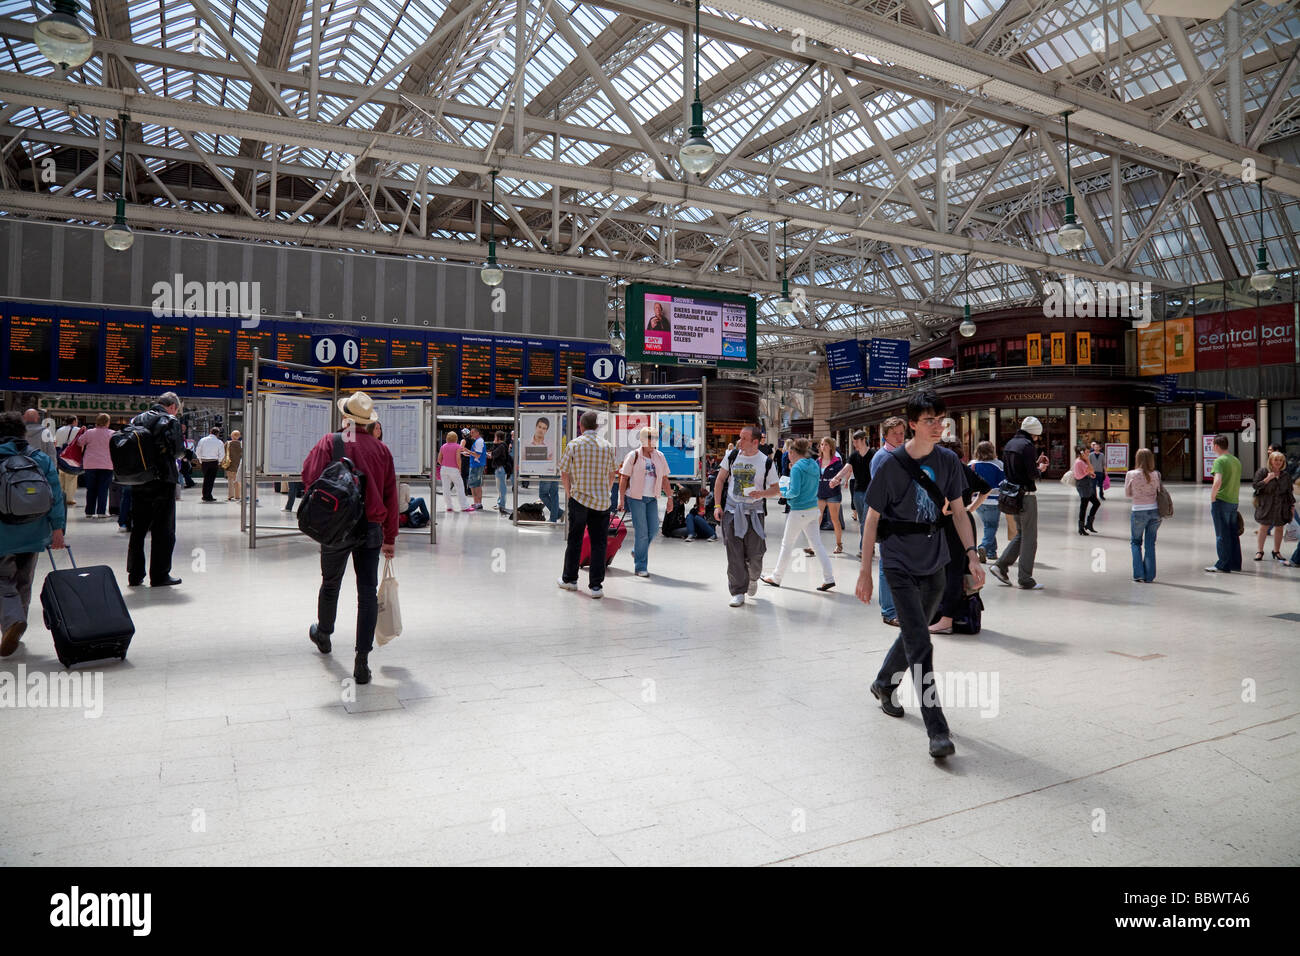 Travellers in Glasgow Central Station, Scotland's busisest train station. - Stock Image